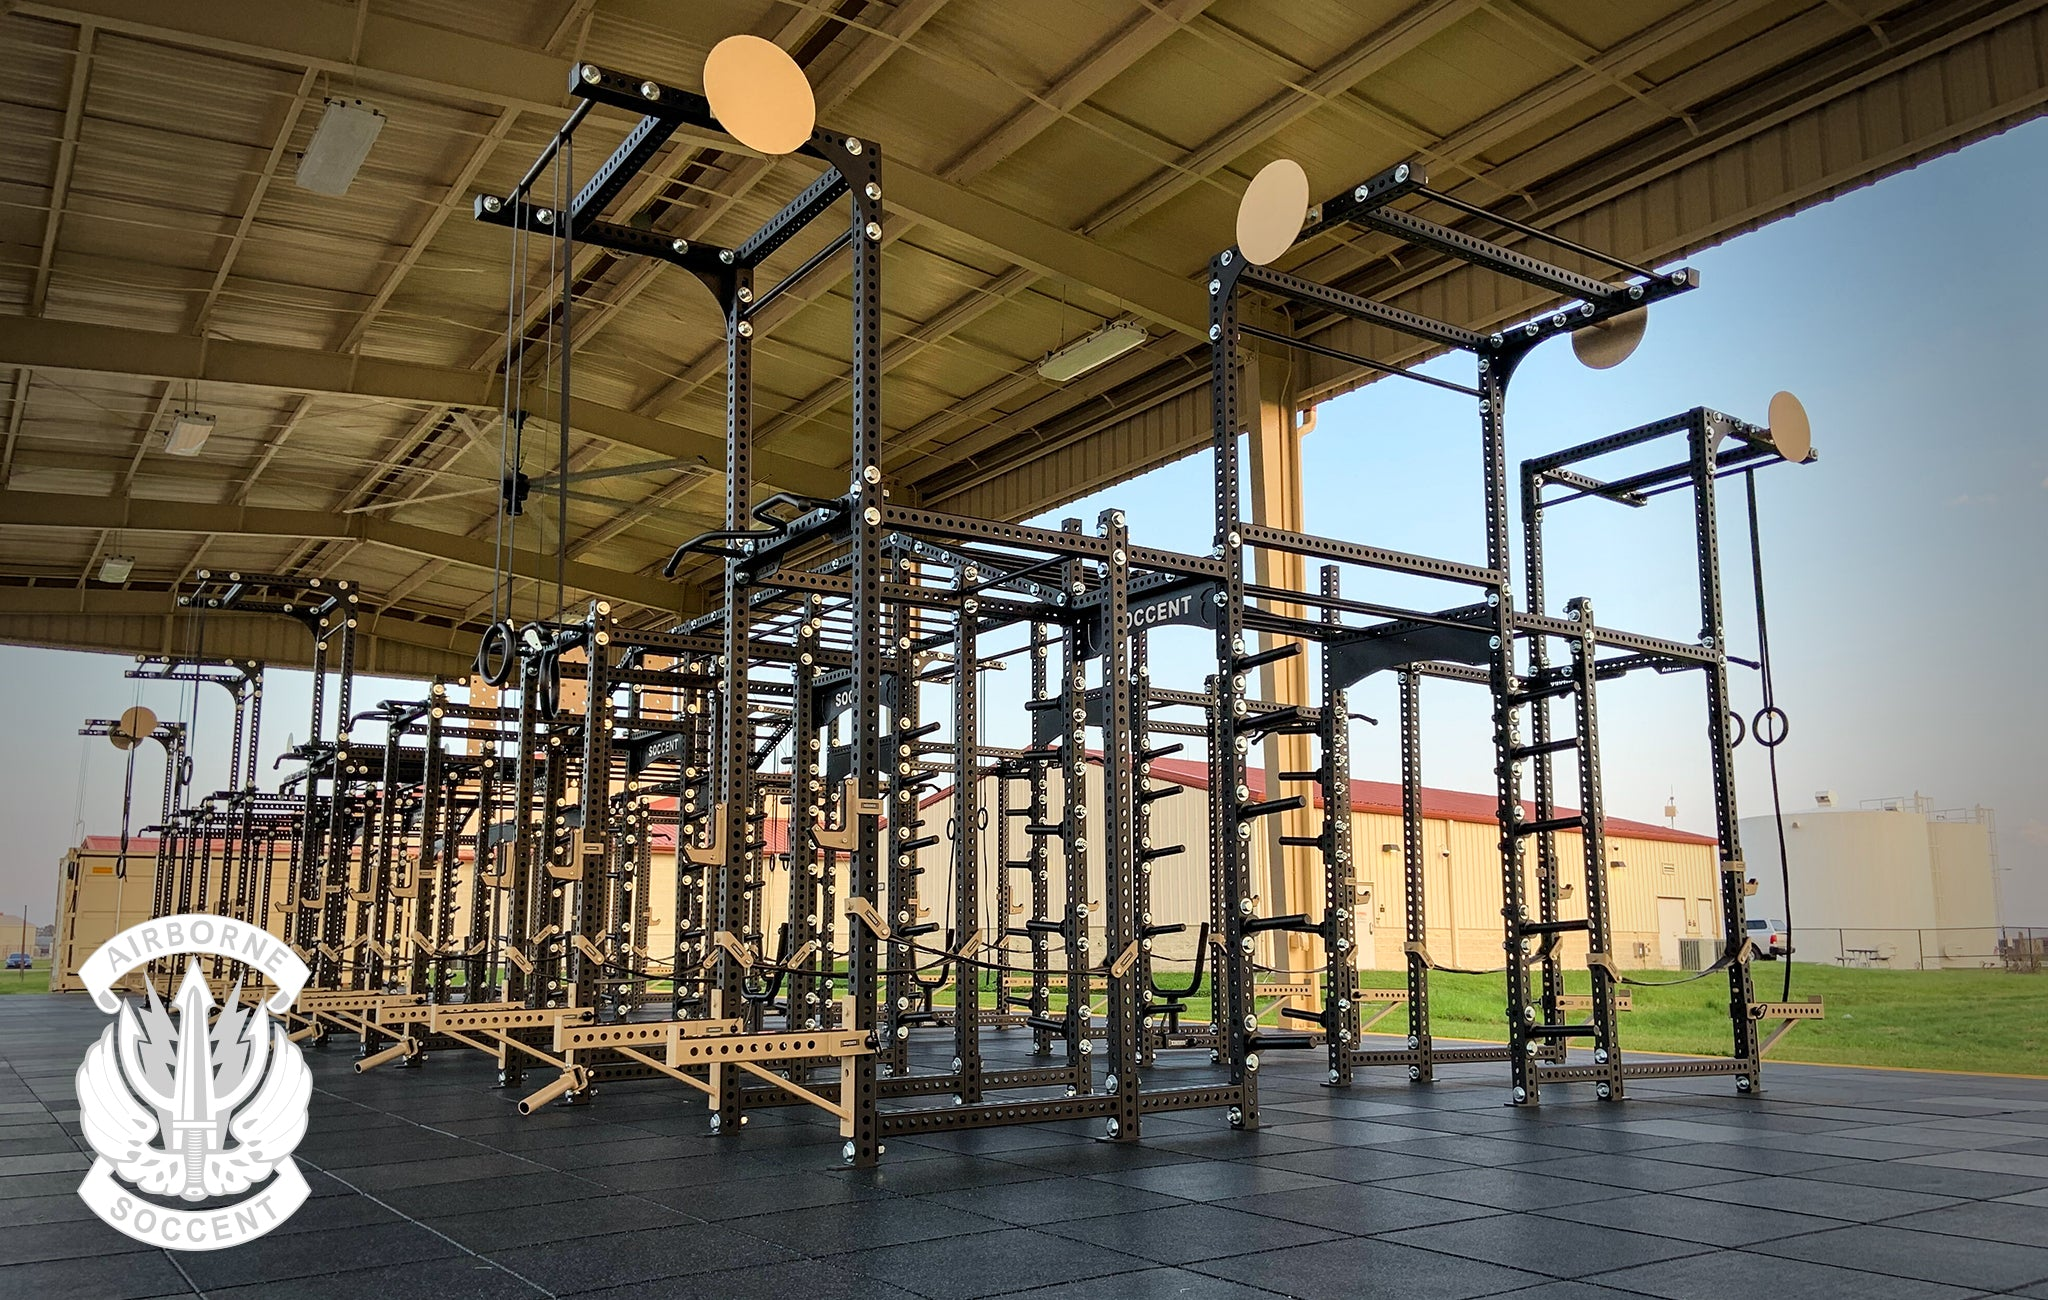 SOCCENT Airborne Sorinex strength and conditioning facility